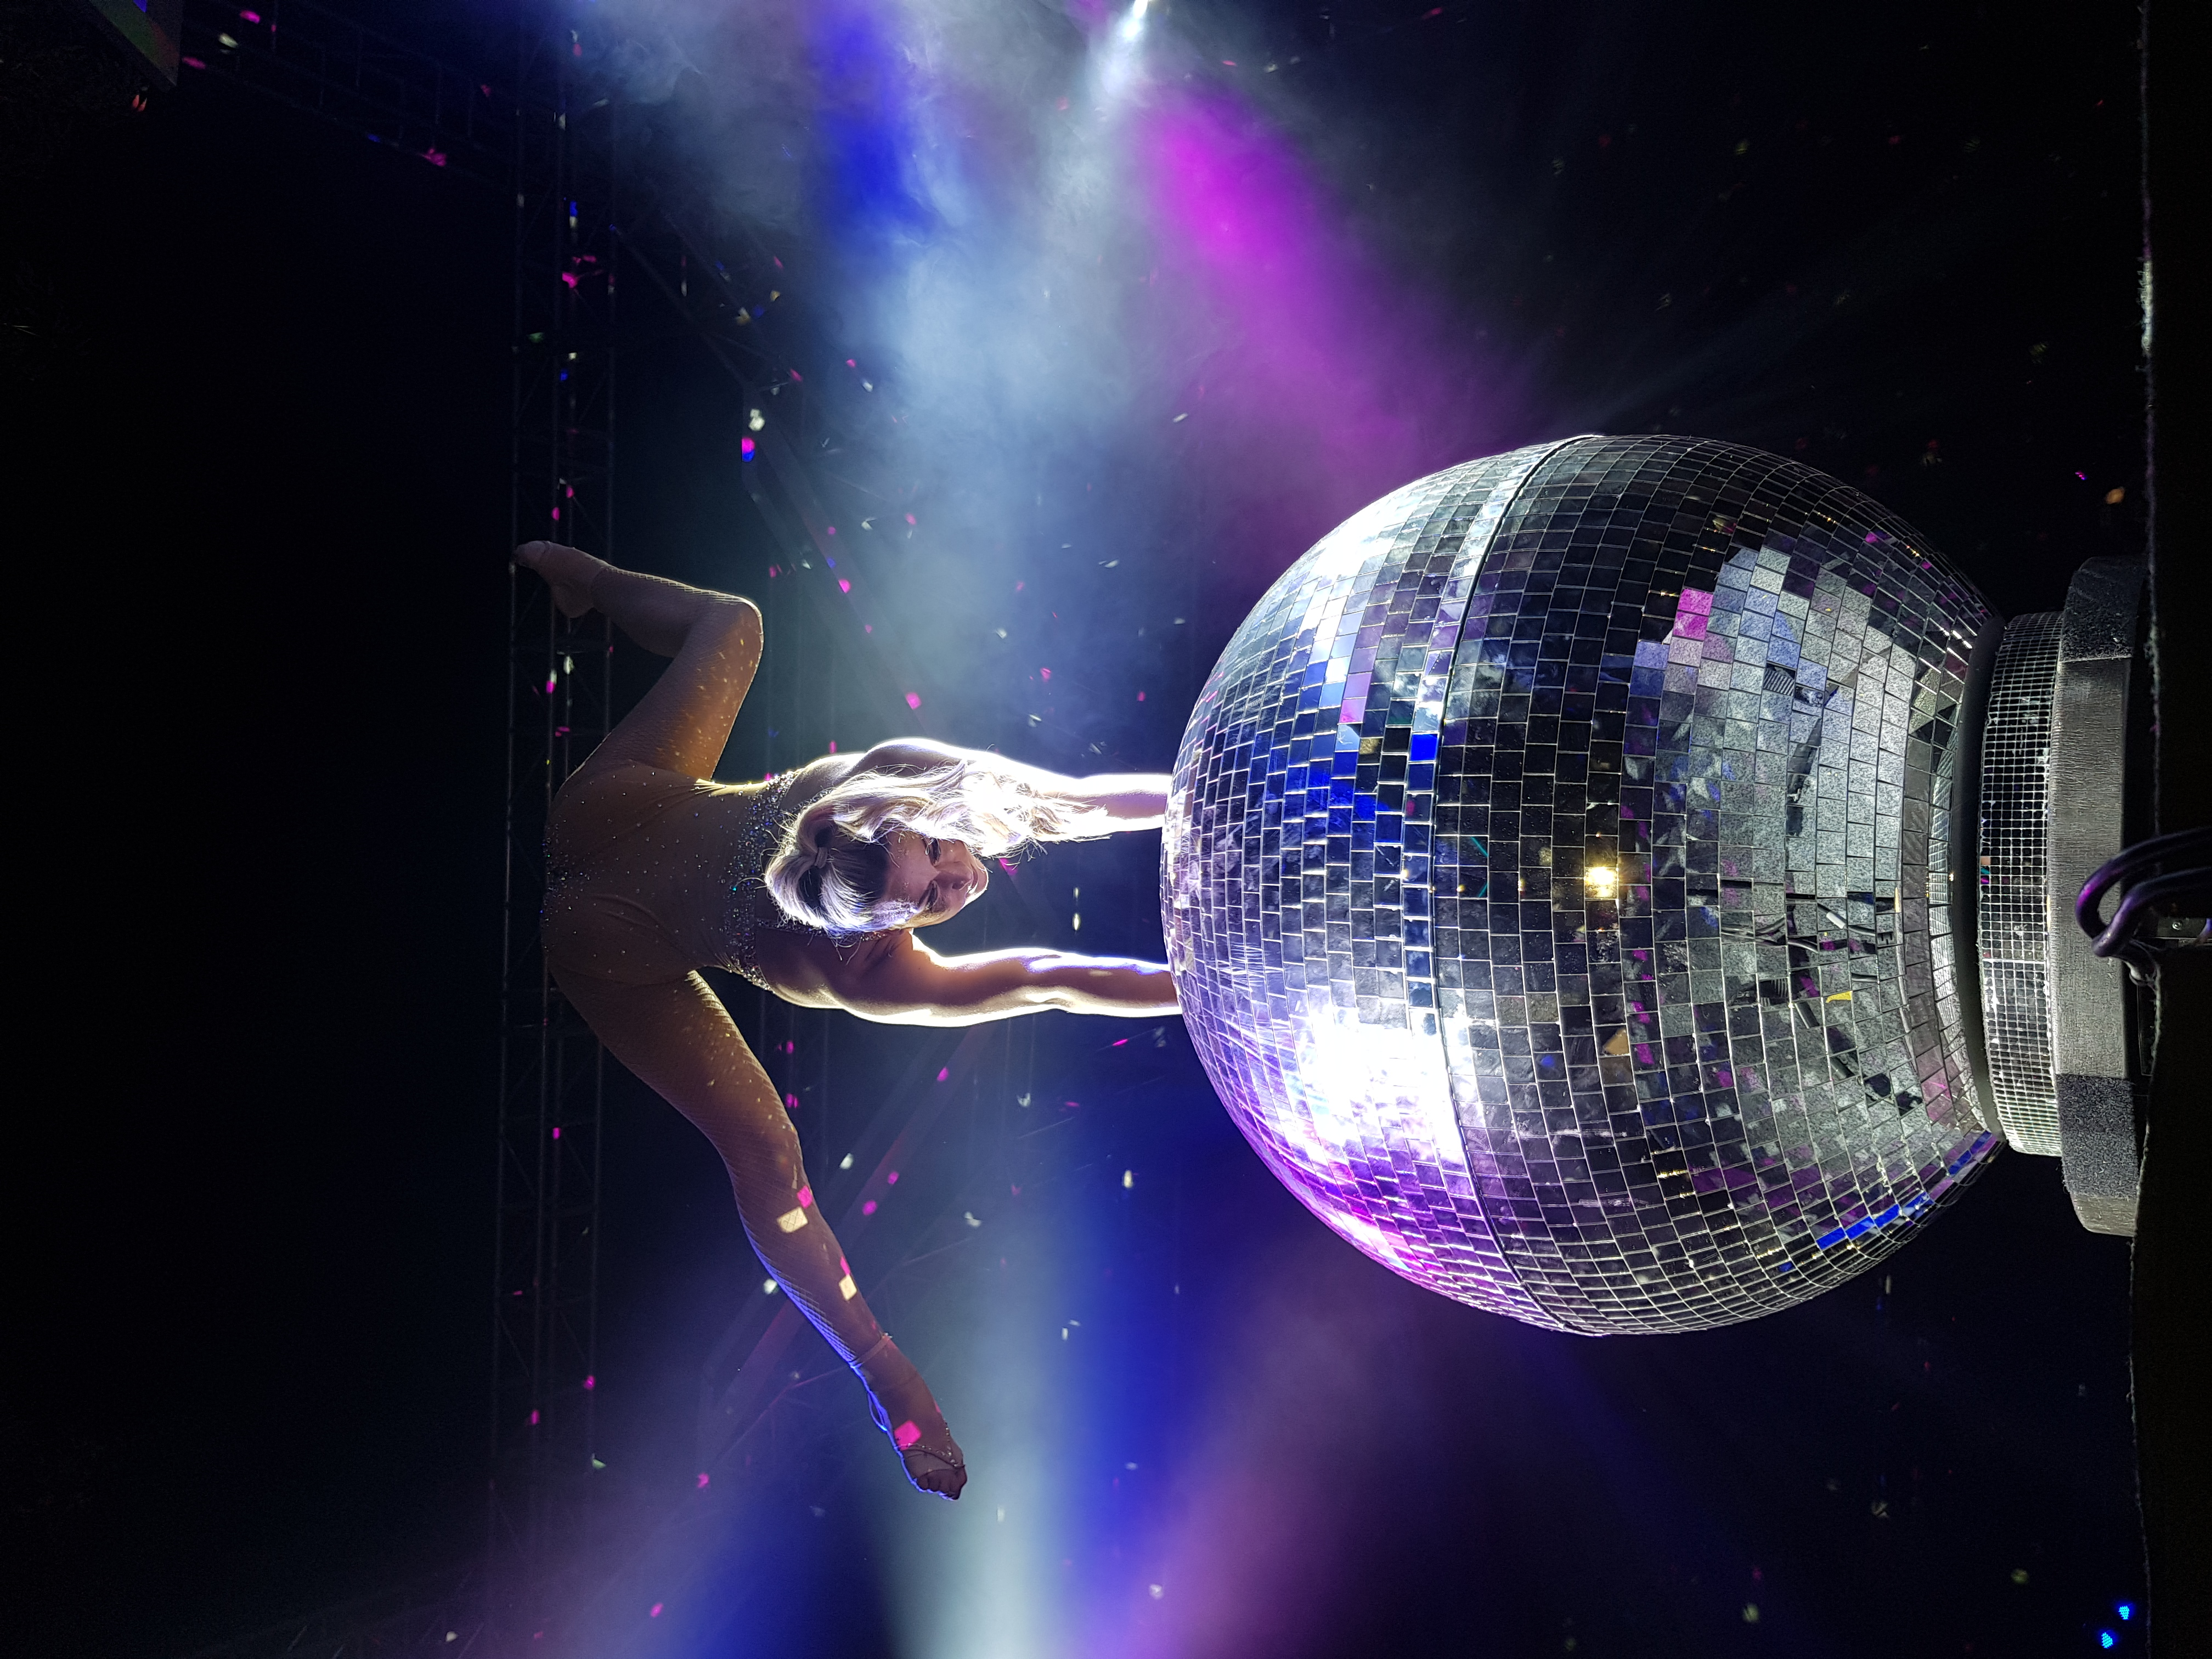 Mirrorball show 1